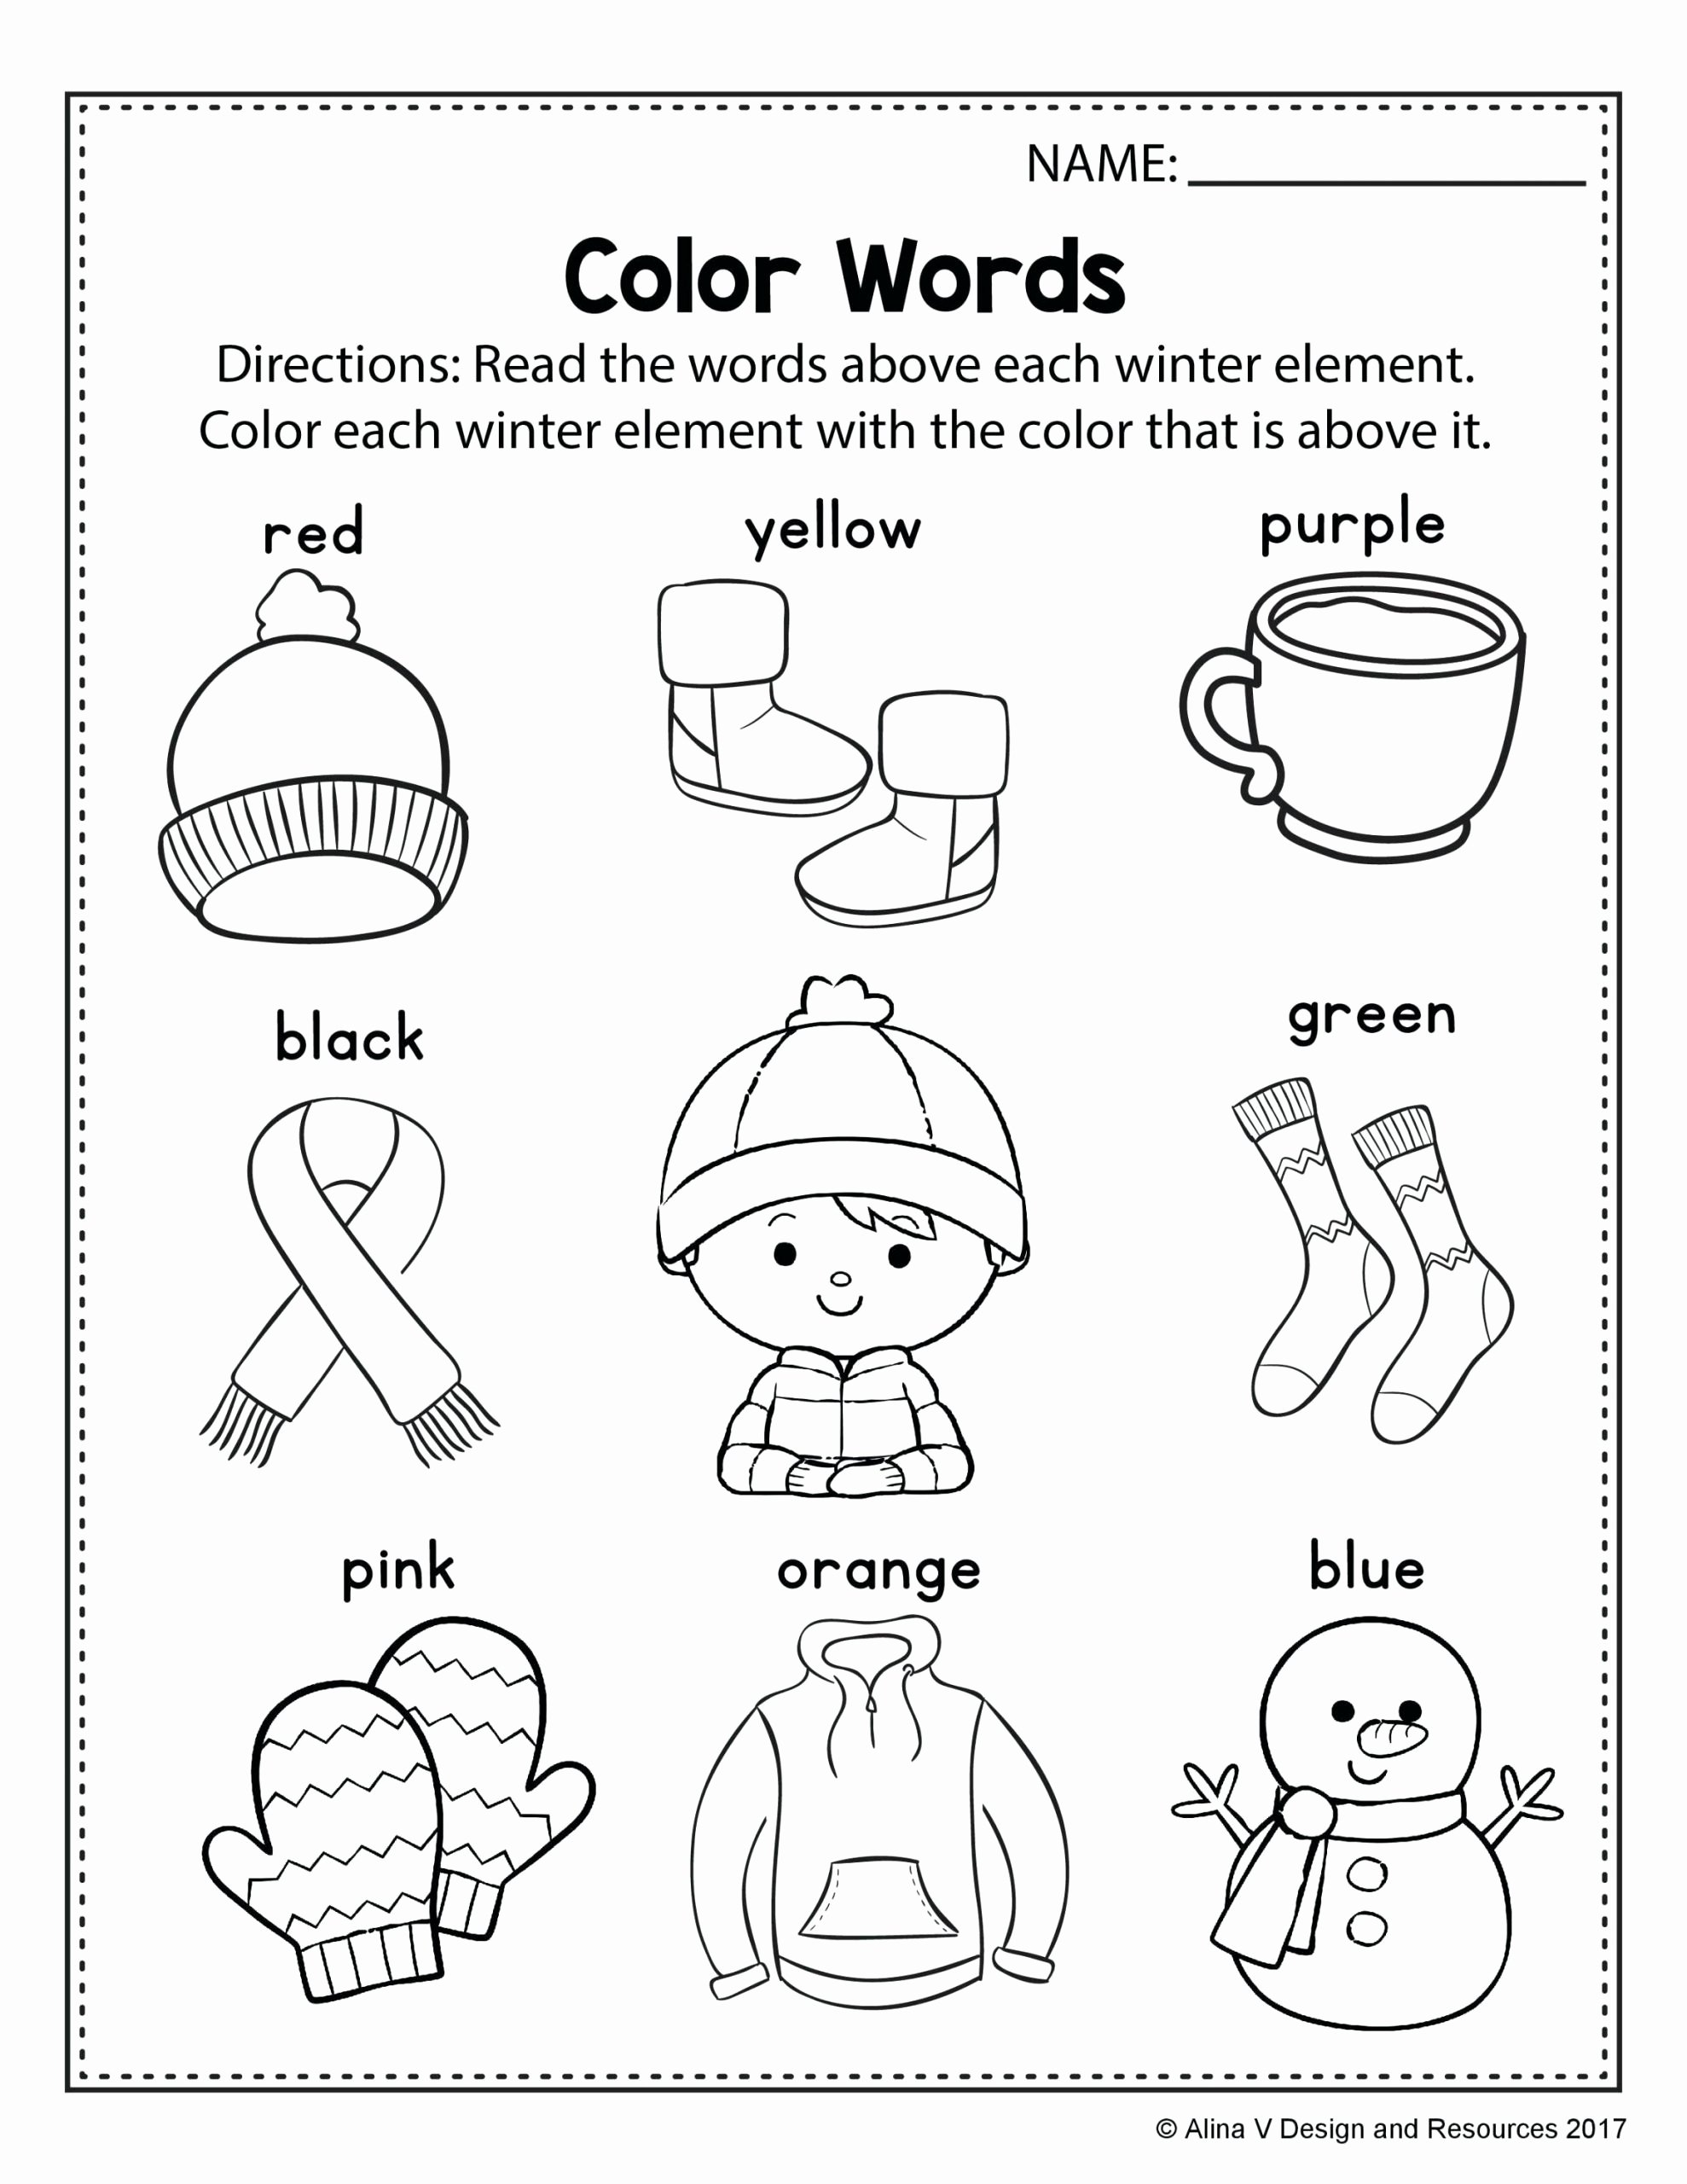 Spring Printable Worksheets for Preschoolers Awesome Math Worksheet 34ba5f74b1214fe91b02c07fb2c2f03e Coloring